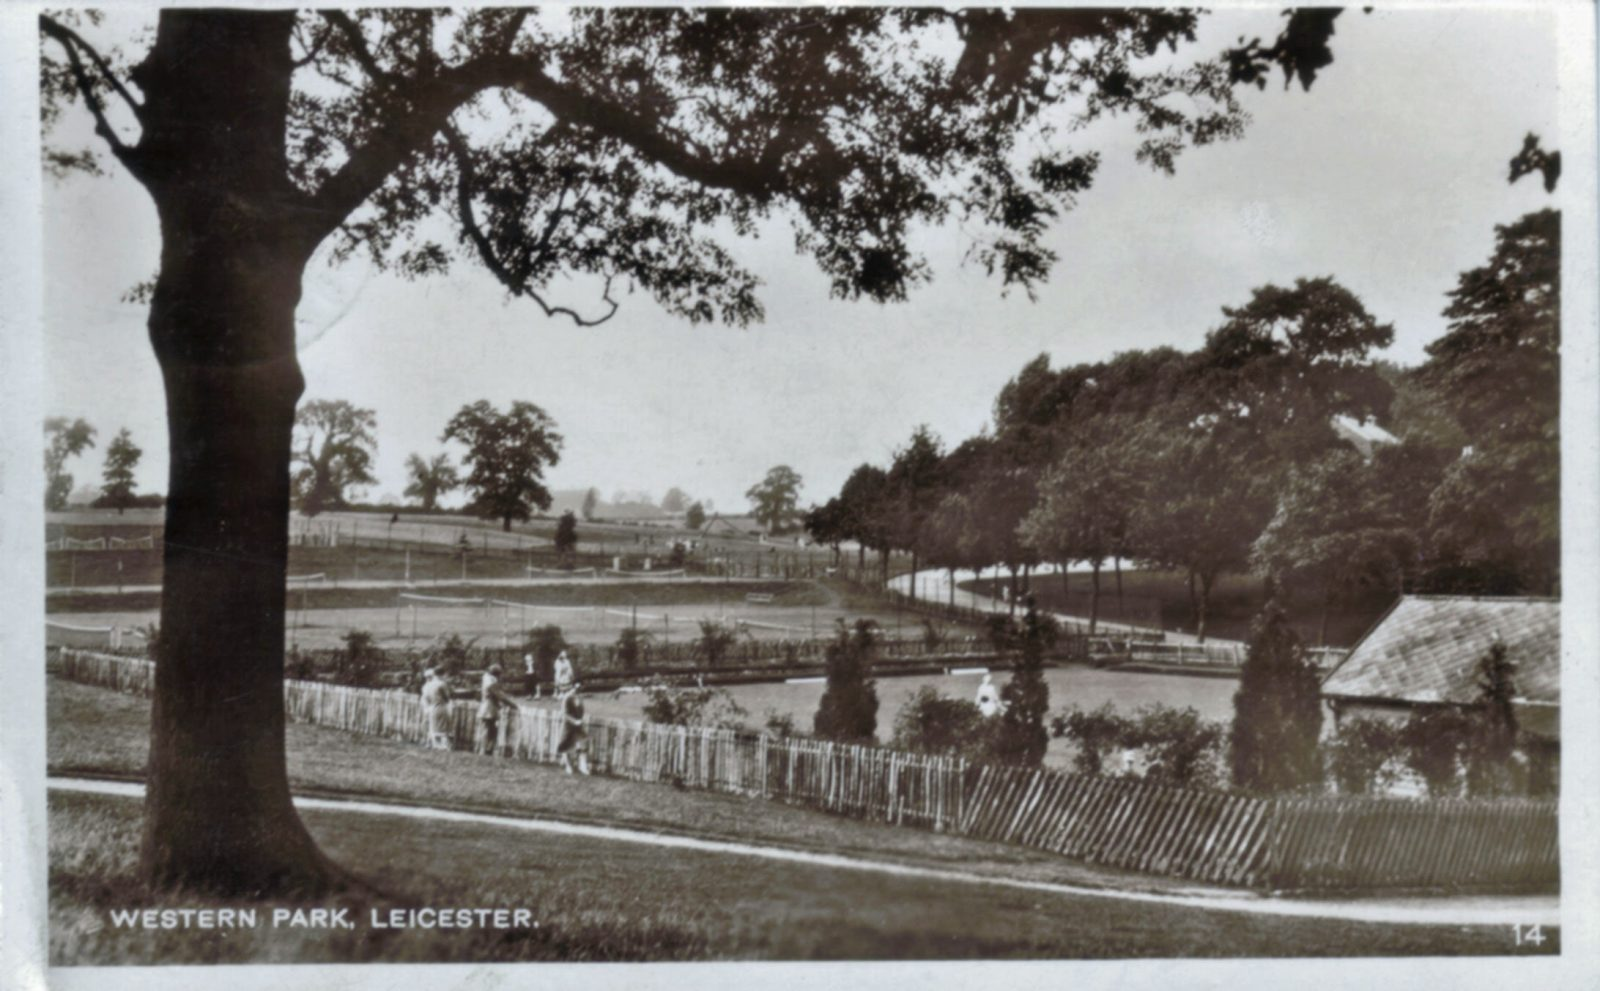 Western Park, Leicester. 1901-1920: Western Park tennis court and bowling green. Posted 1918-21 (File:1225)